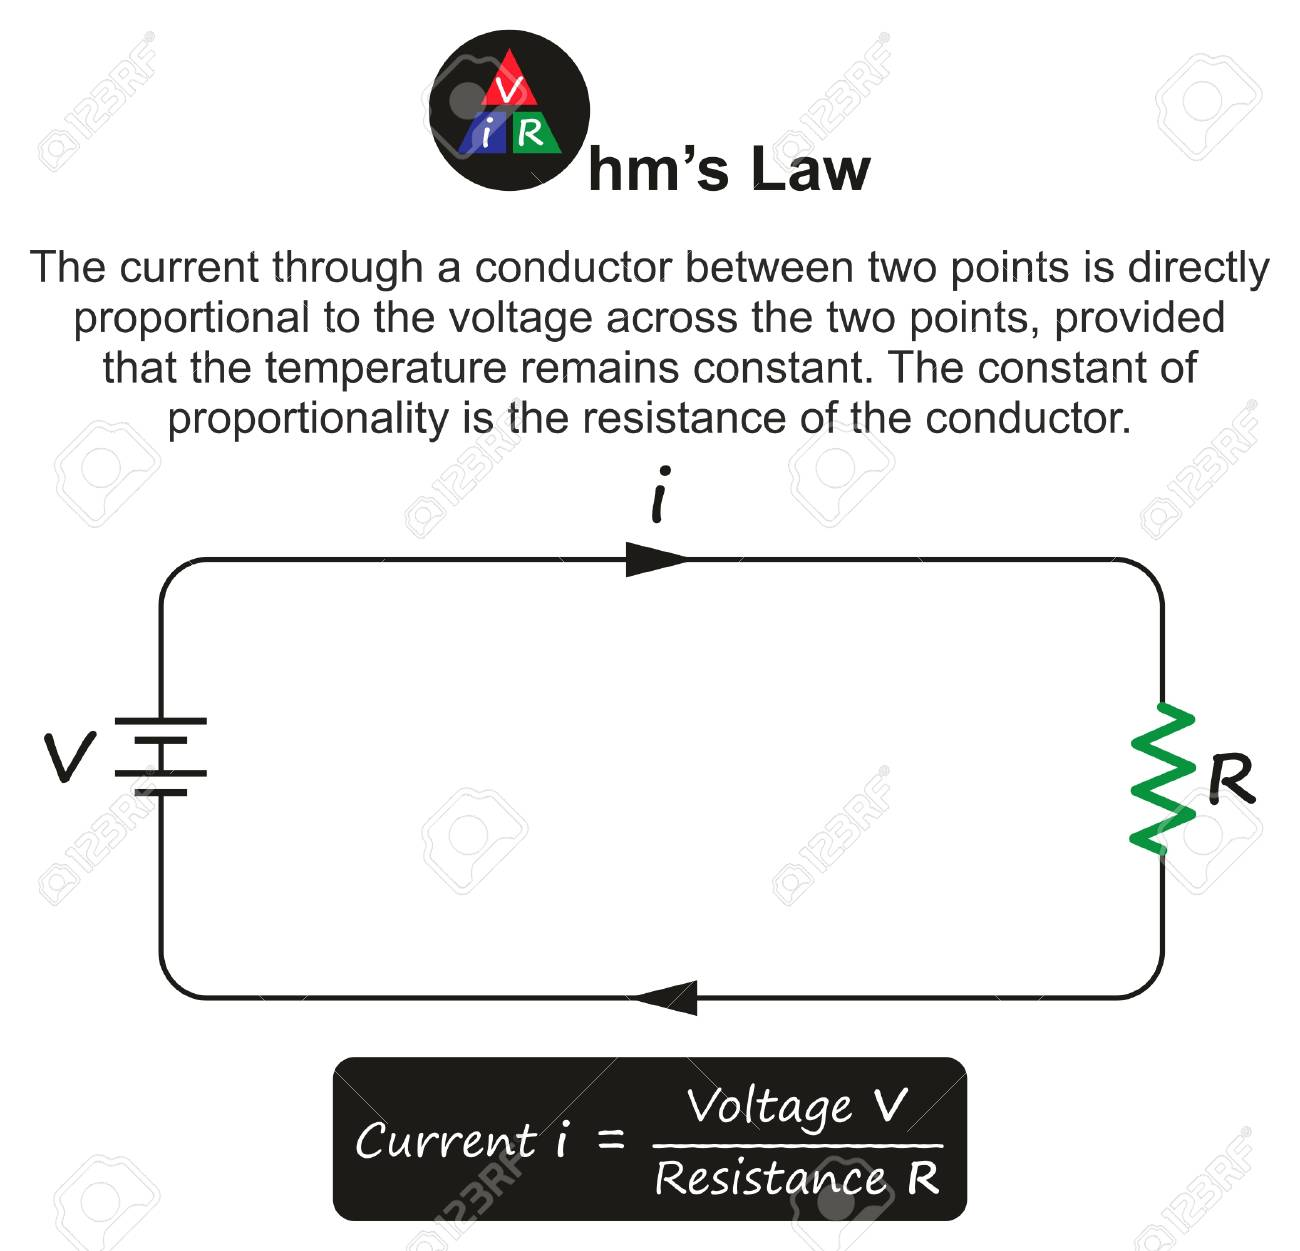 hight resolution of ohm s law infographic diagram showing a simple electric circuit including current voltage resistance and relation between